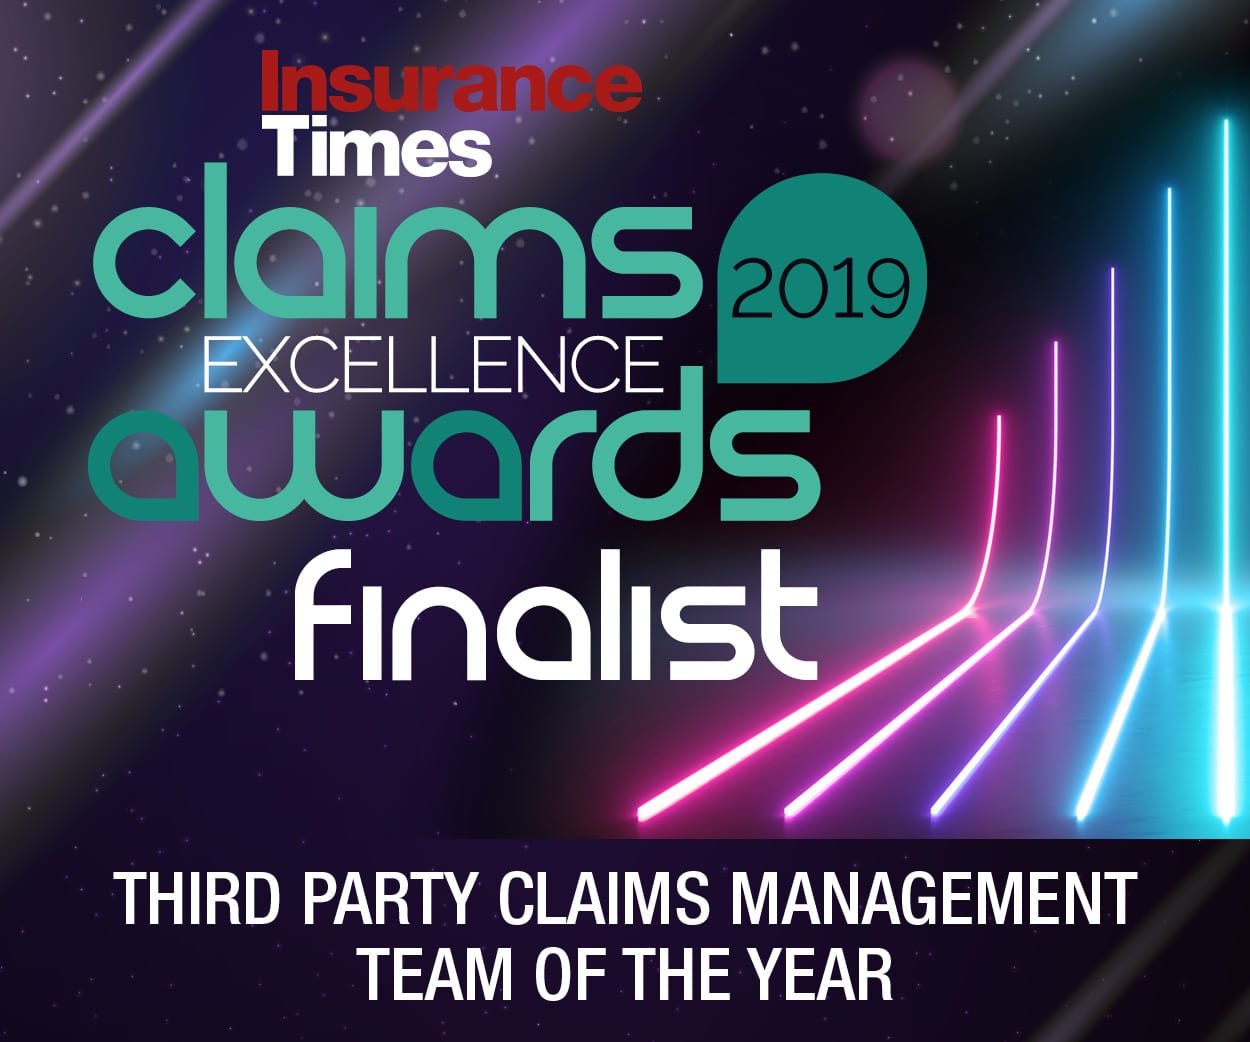 Insurance Claims Excellence Awards